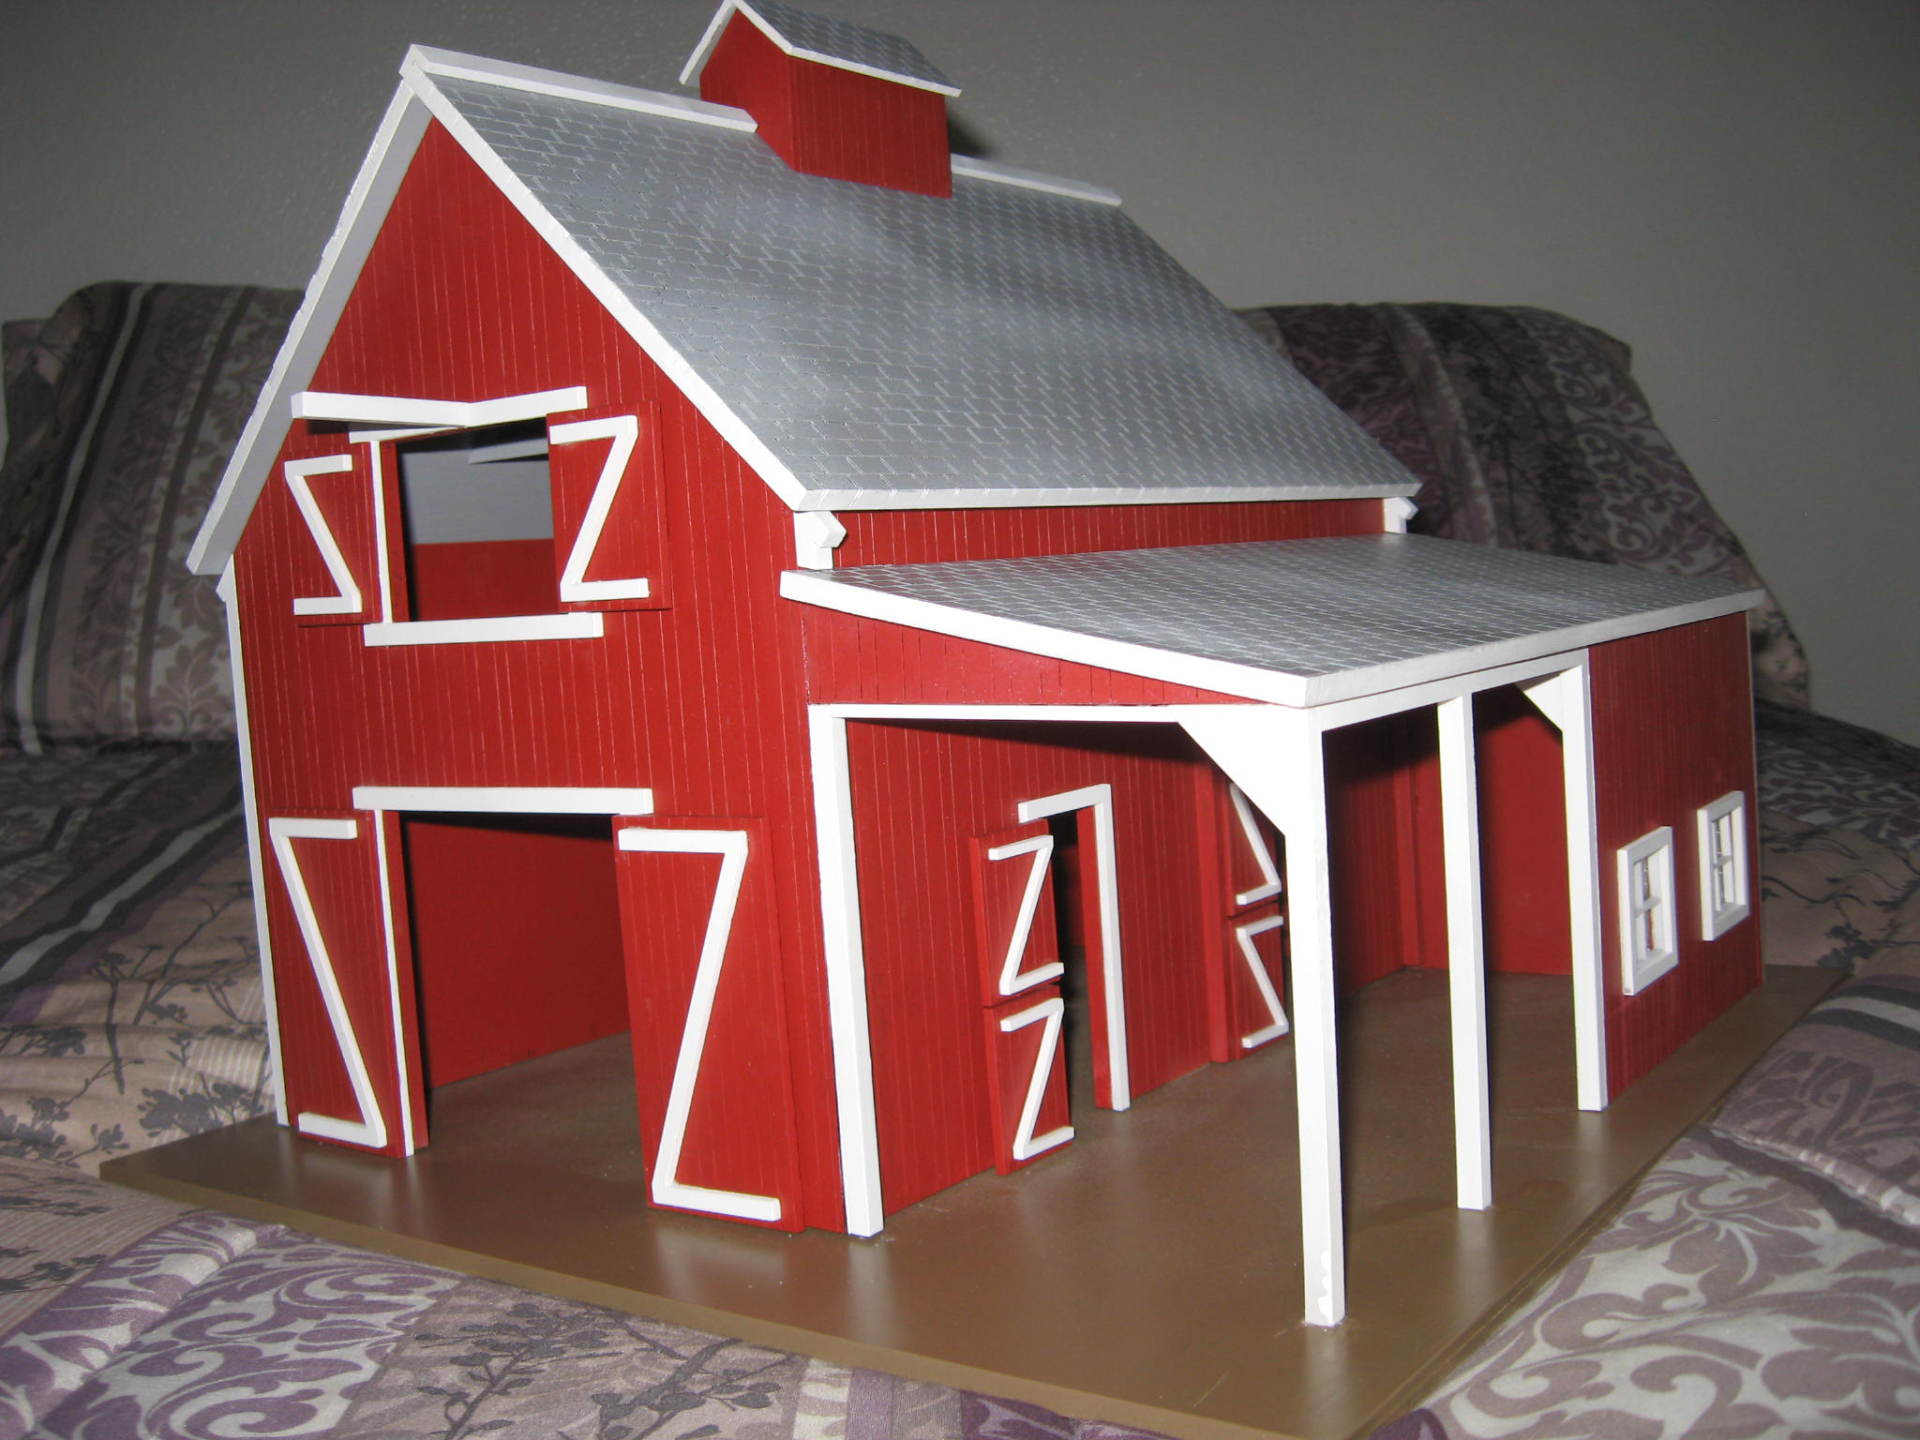 Big Barn with stable